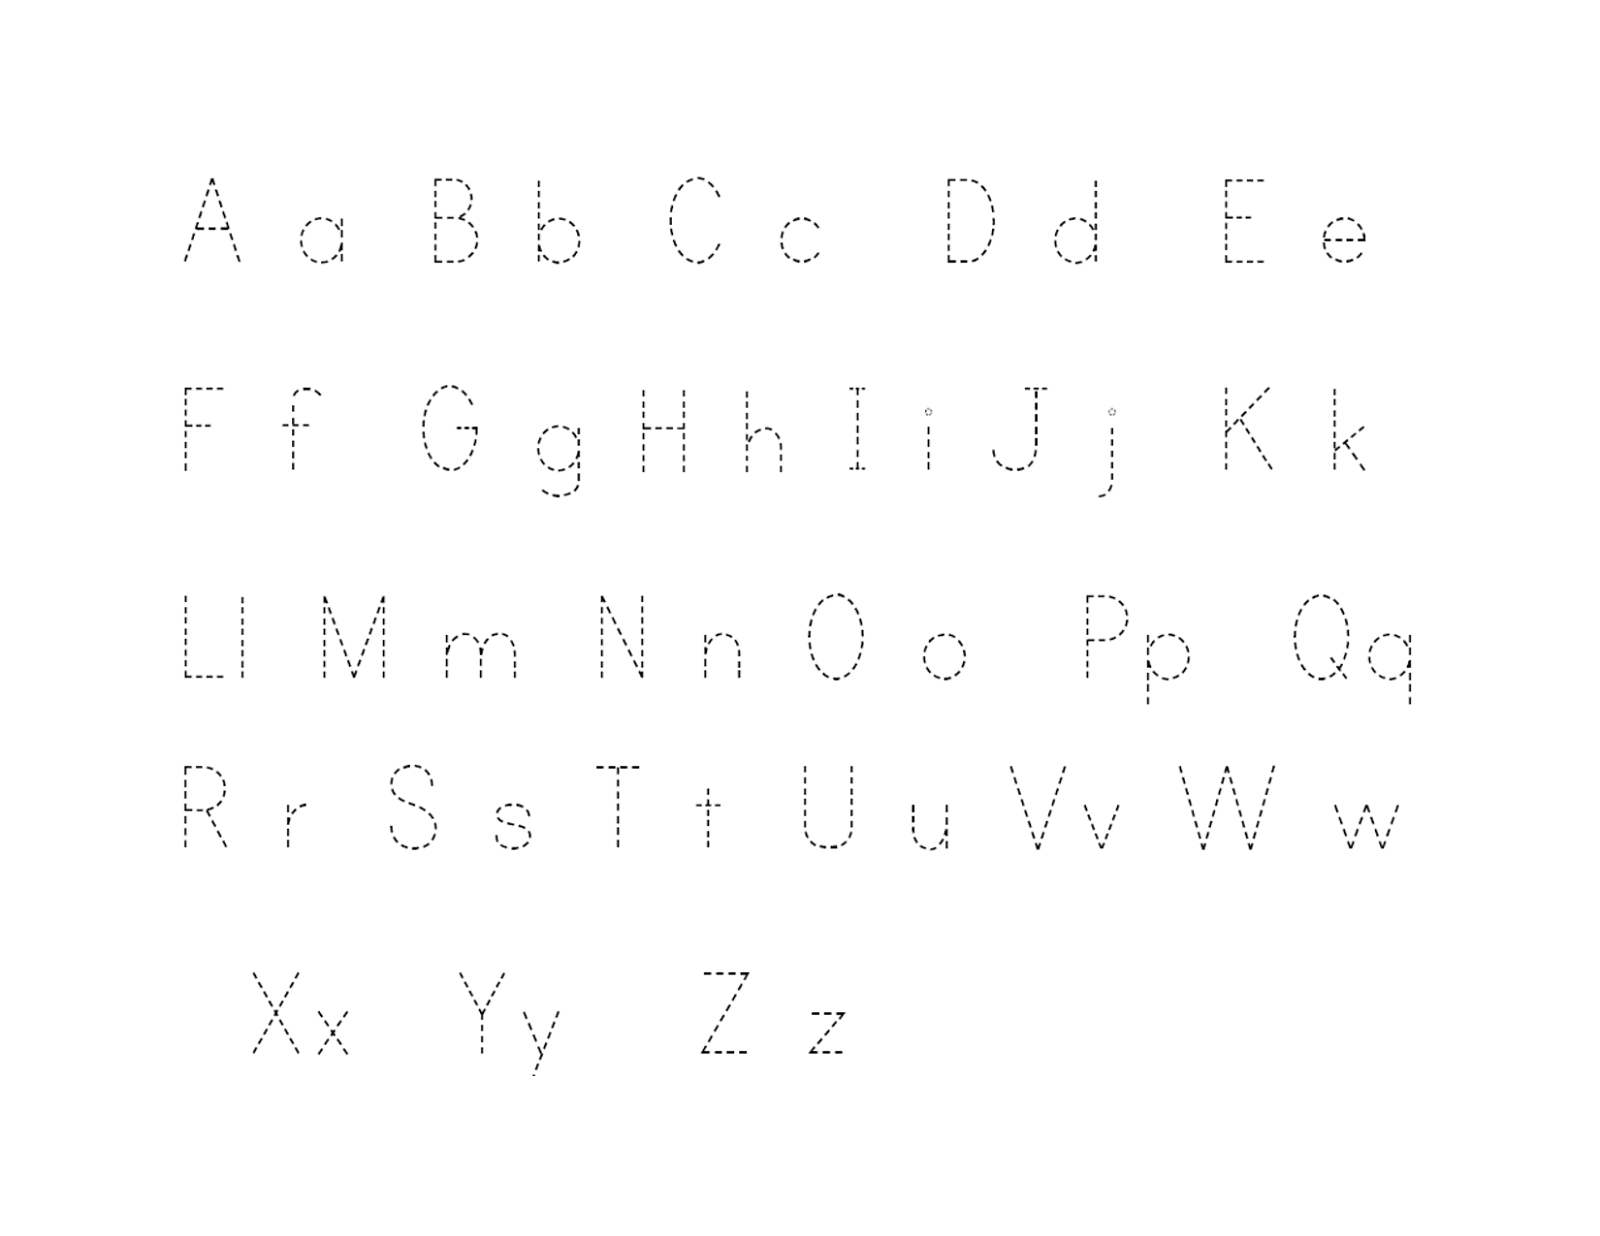 Alphabet Tracer Pages For Kids